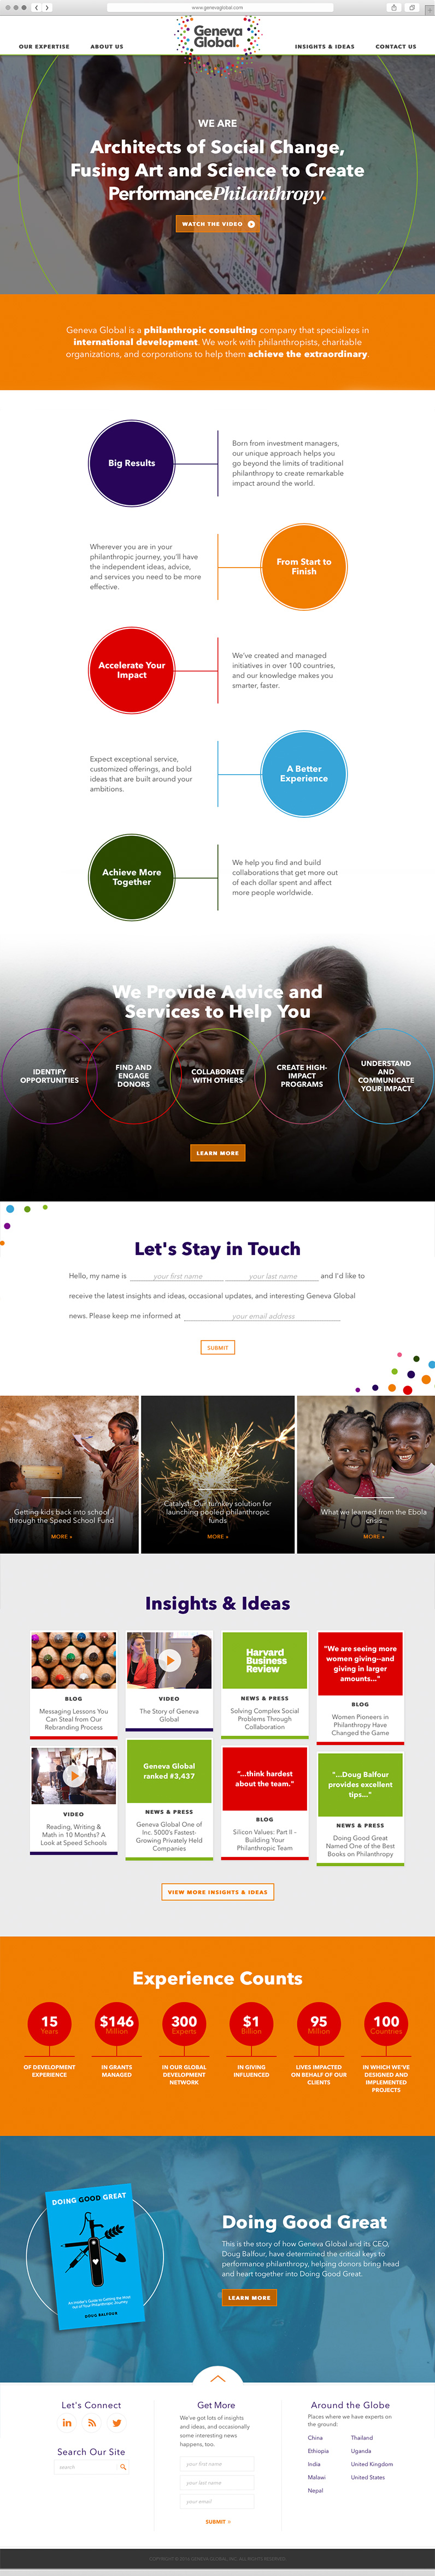 Web Design and Branding Execution for Philadelphia Non-Profit and Foundation Consultants, NPO digital marketing, non-profit website design, Geneva Global, Geneva Global Website, Push10, Philadelphia, Custom Photography, Web Design, Web Development